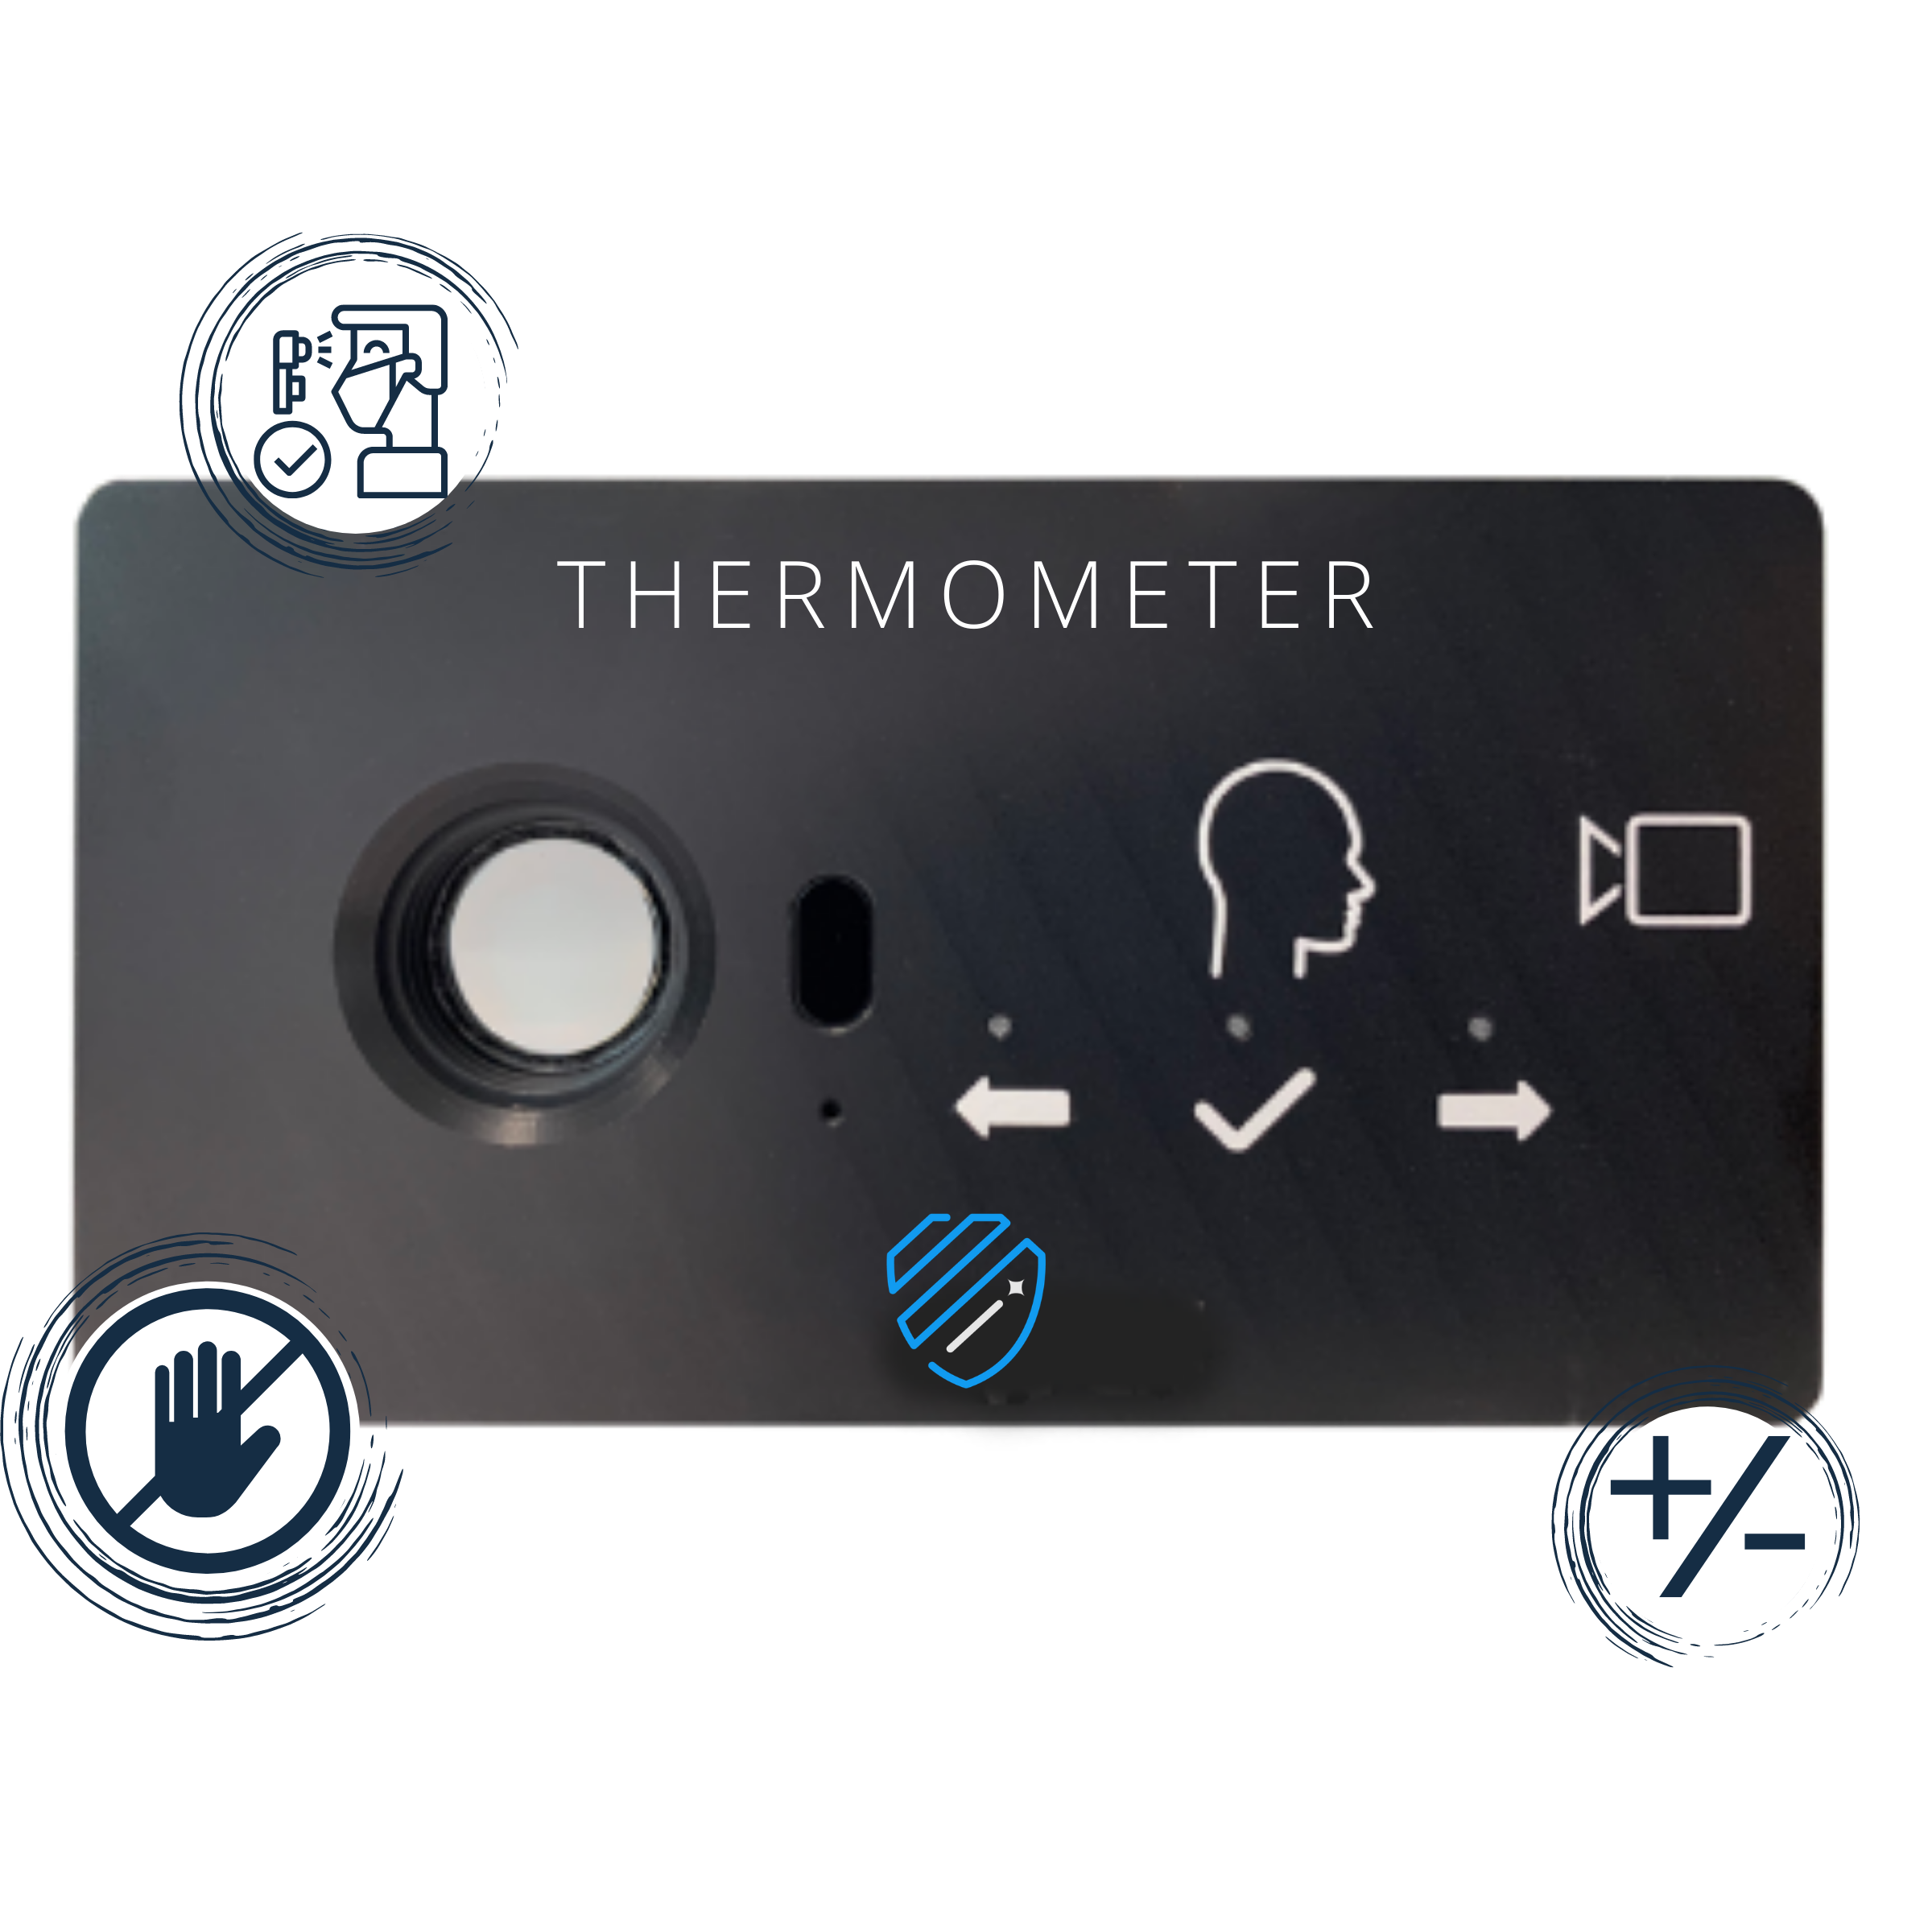 INTEGRATED TOUCHLESS THERMOMETER FOR INDUSTRIAL COMPANIES